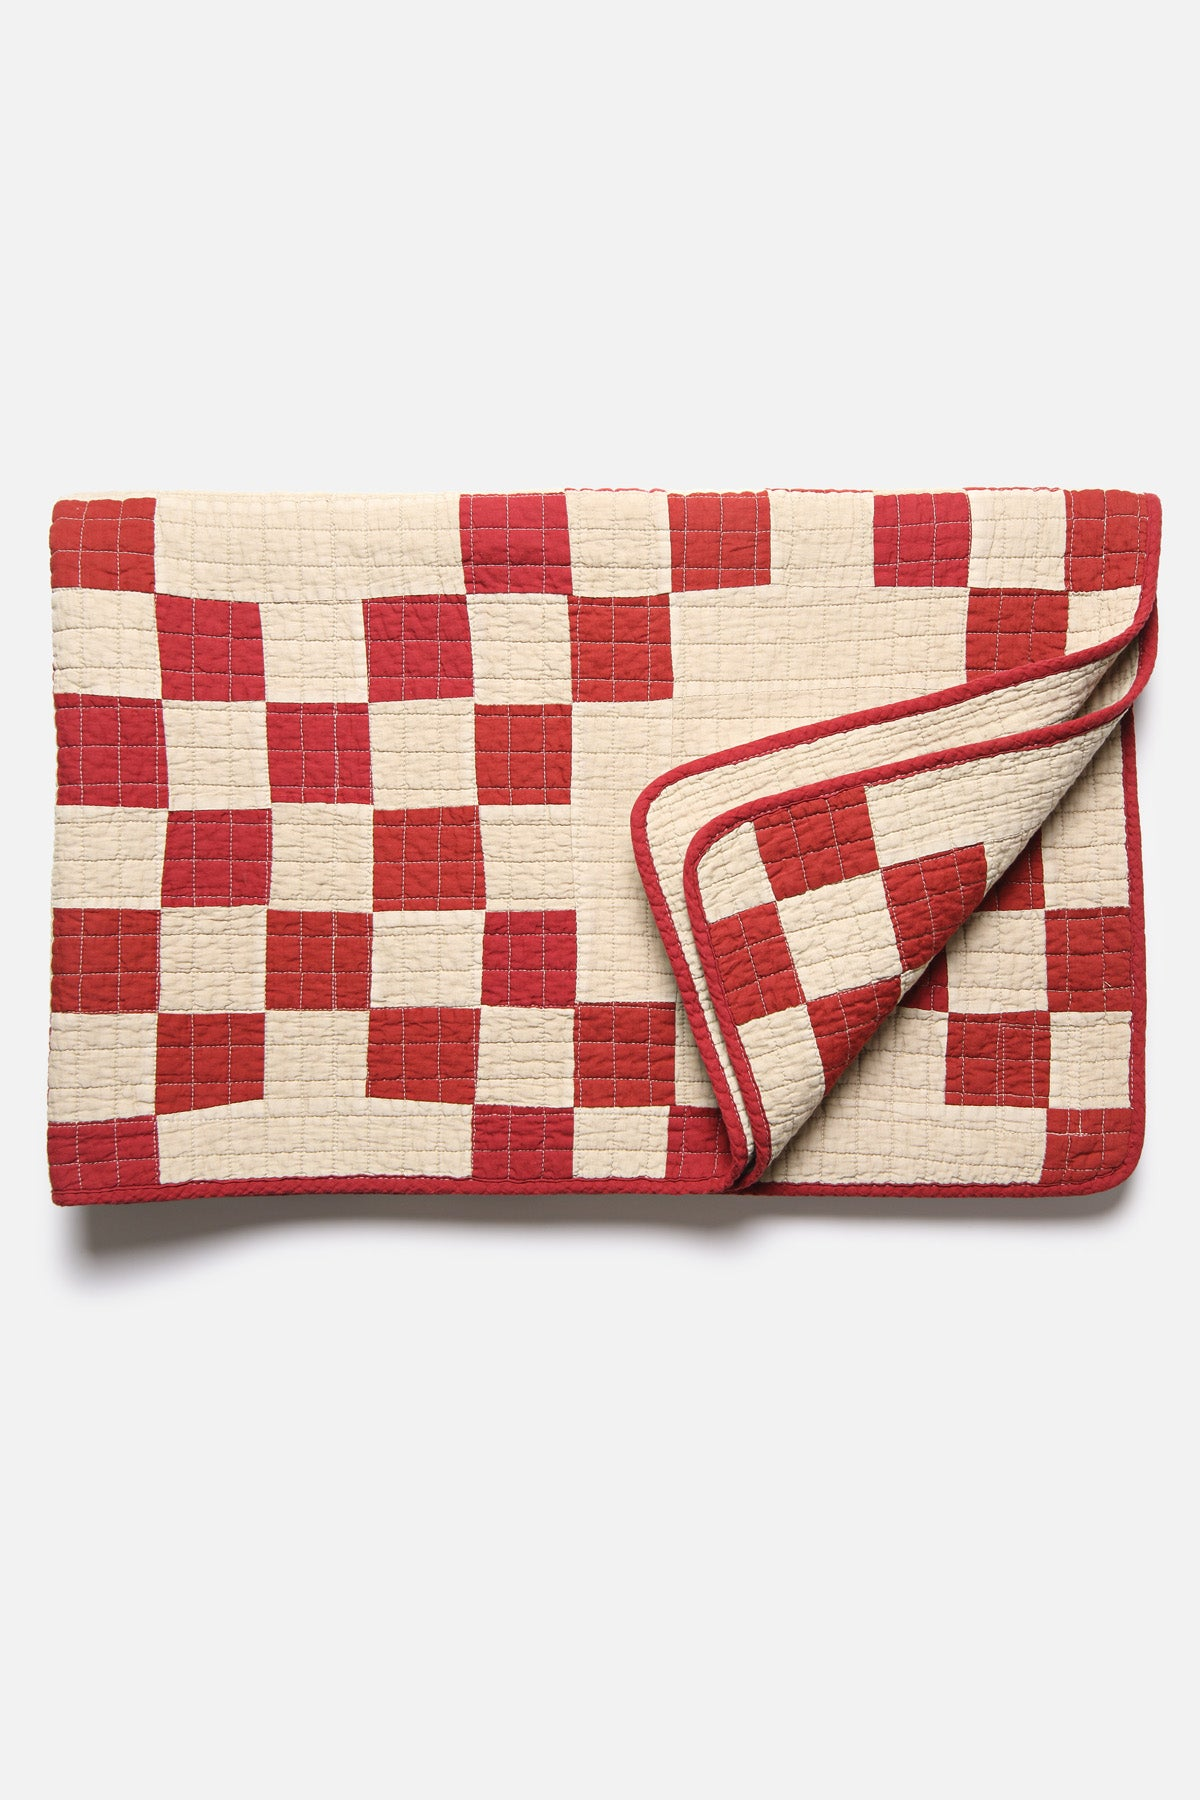 BasShu Patchwork Quilt in Red - Fortune Goods